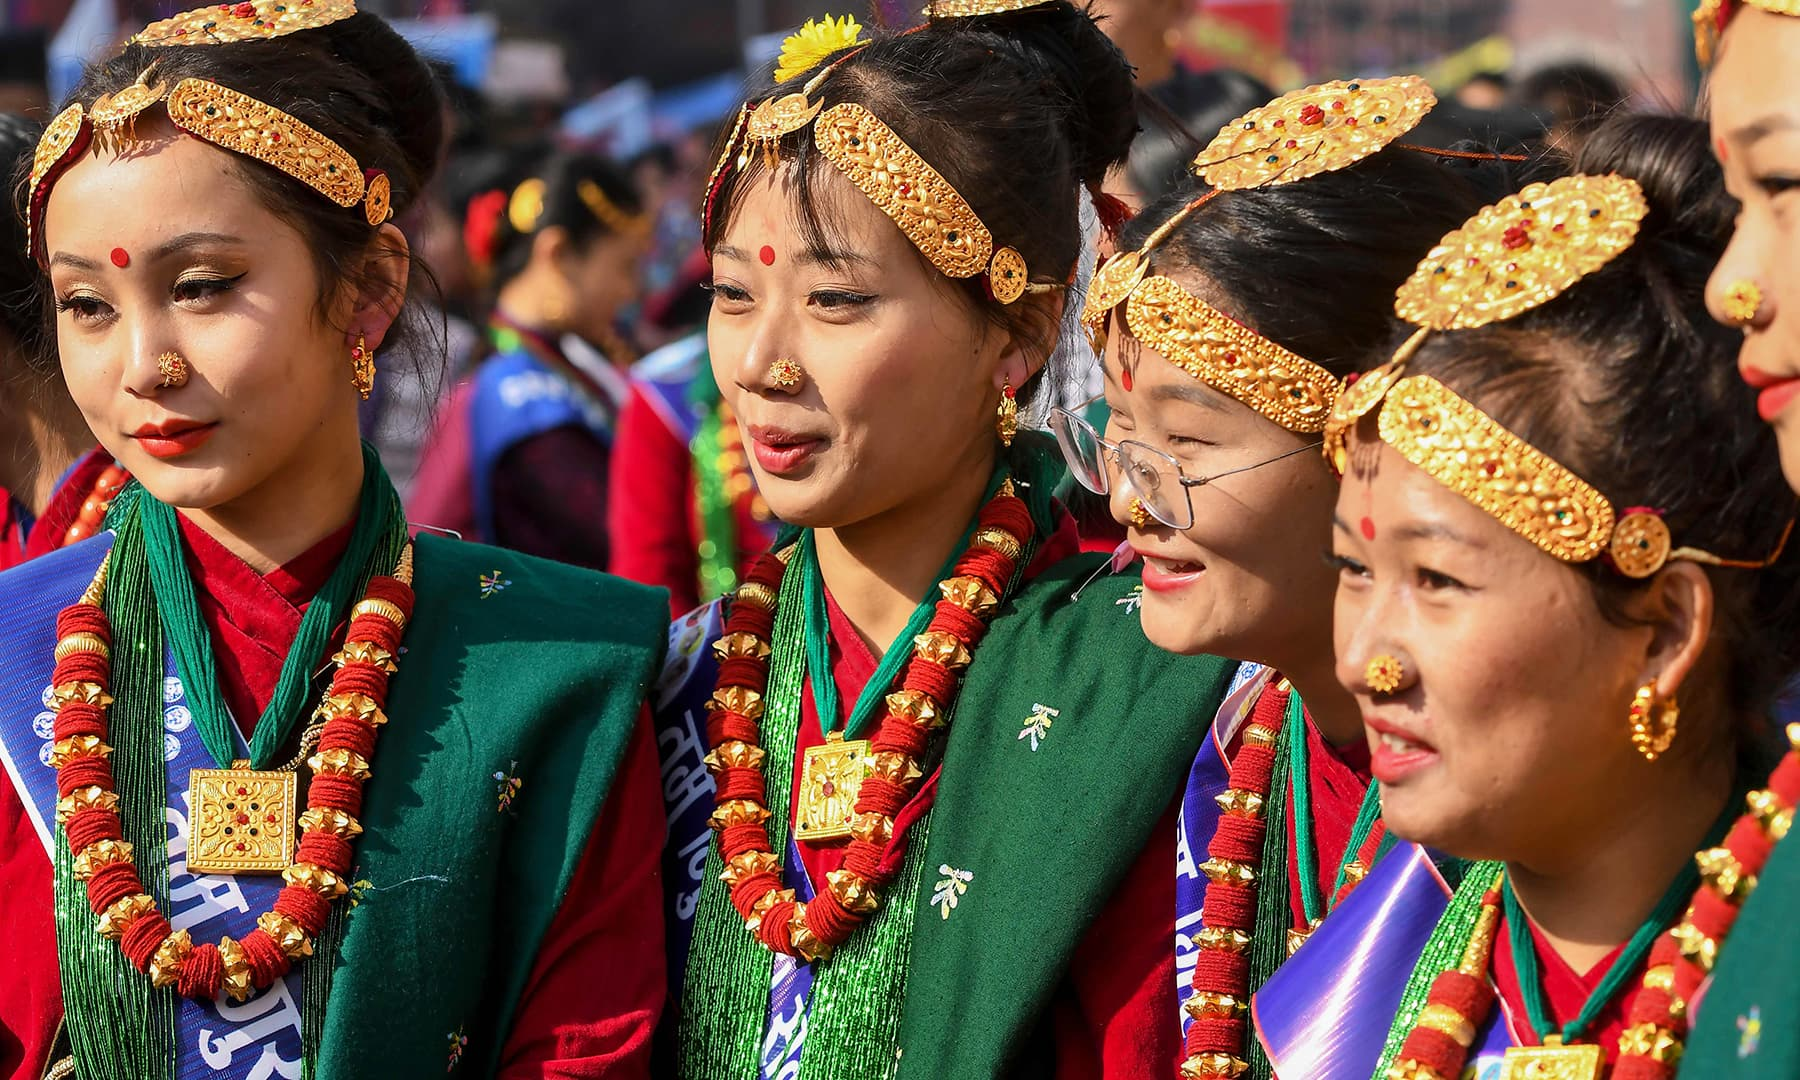 Members of the indigenous Gurung community wearing traditional attire react as they take part in a New Year celebration ceremony known as 'Tamu Lhosar' in Kathmandu on Tuesday. — AFP